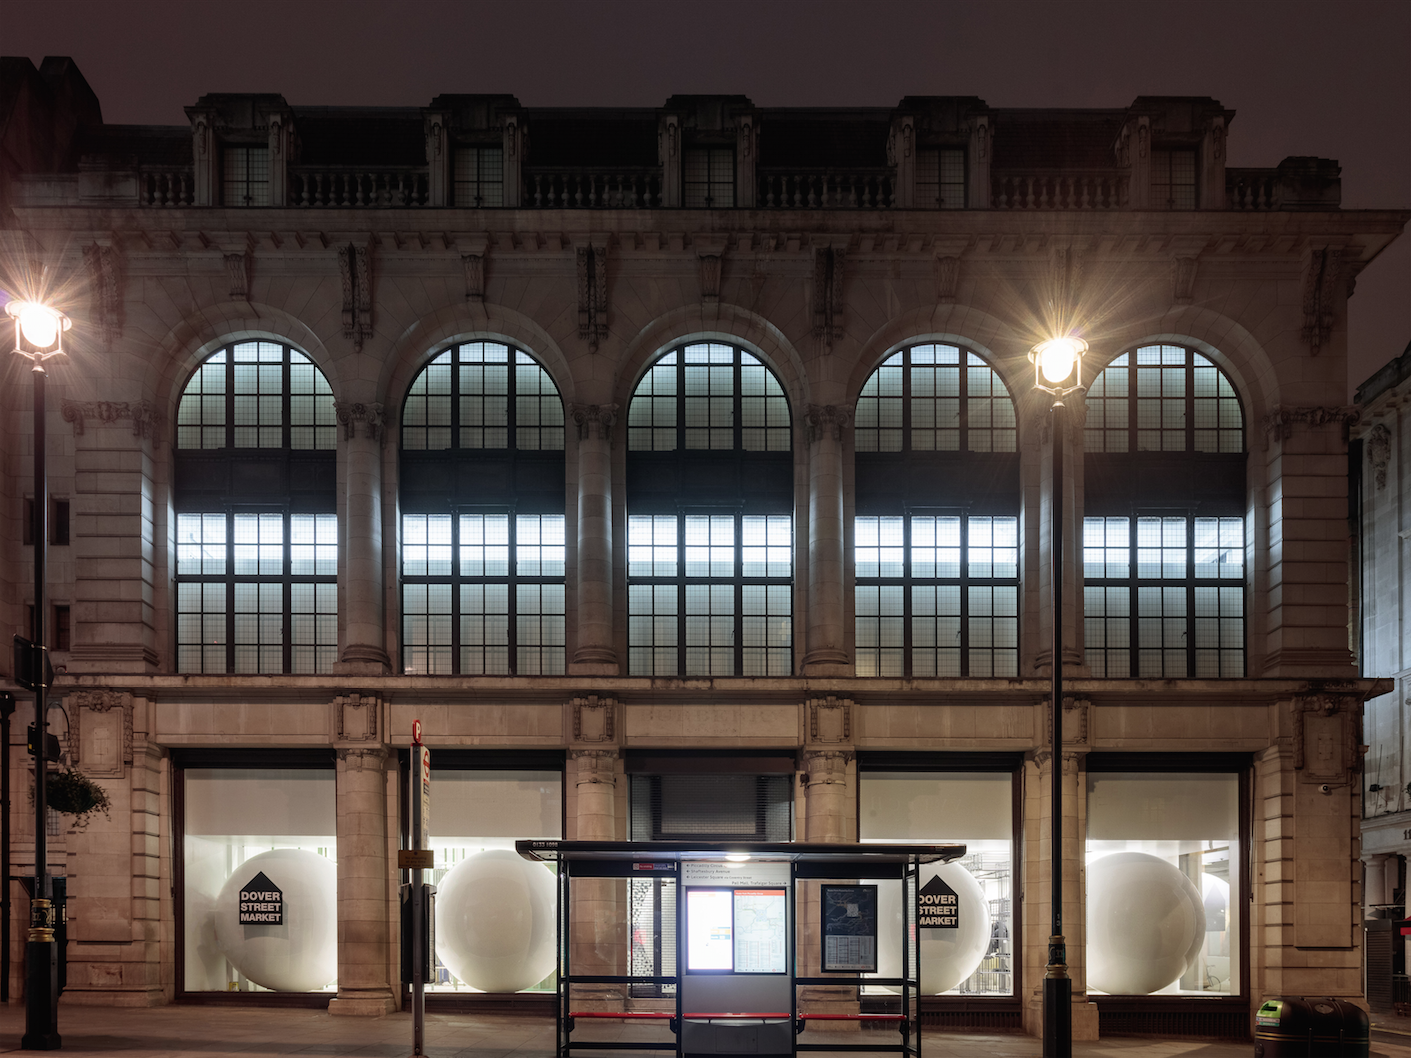 DOVER STREET MARKET NEW OPENING IN LONDON HAYMARKET